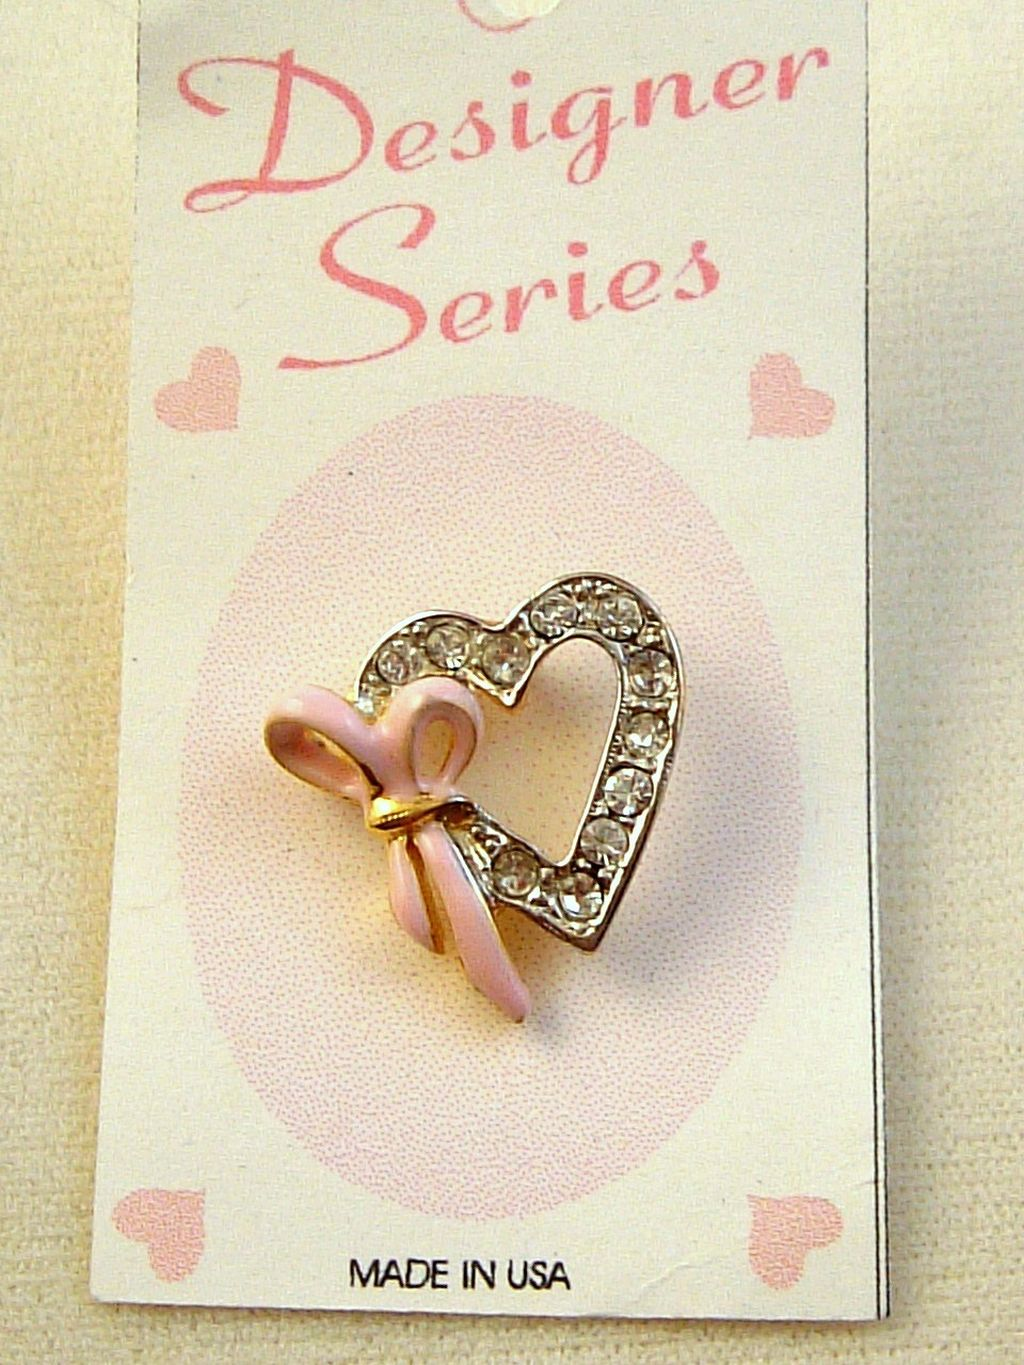 Breast Cancer Pink Ribbon Heart Pin, Two-tone Gold Silver, Clear Diamond Crystal